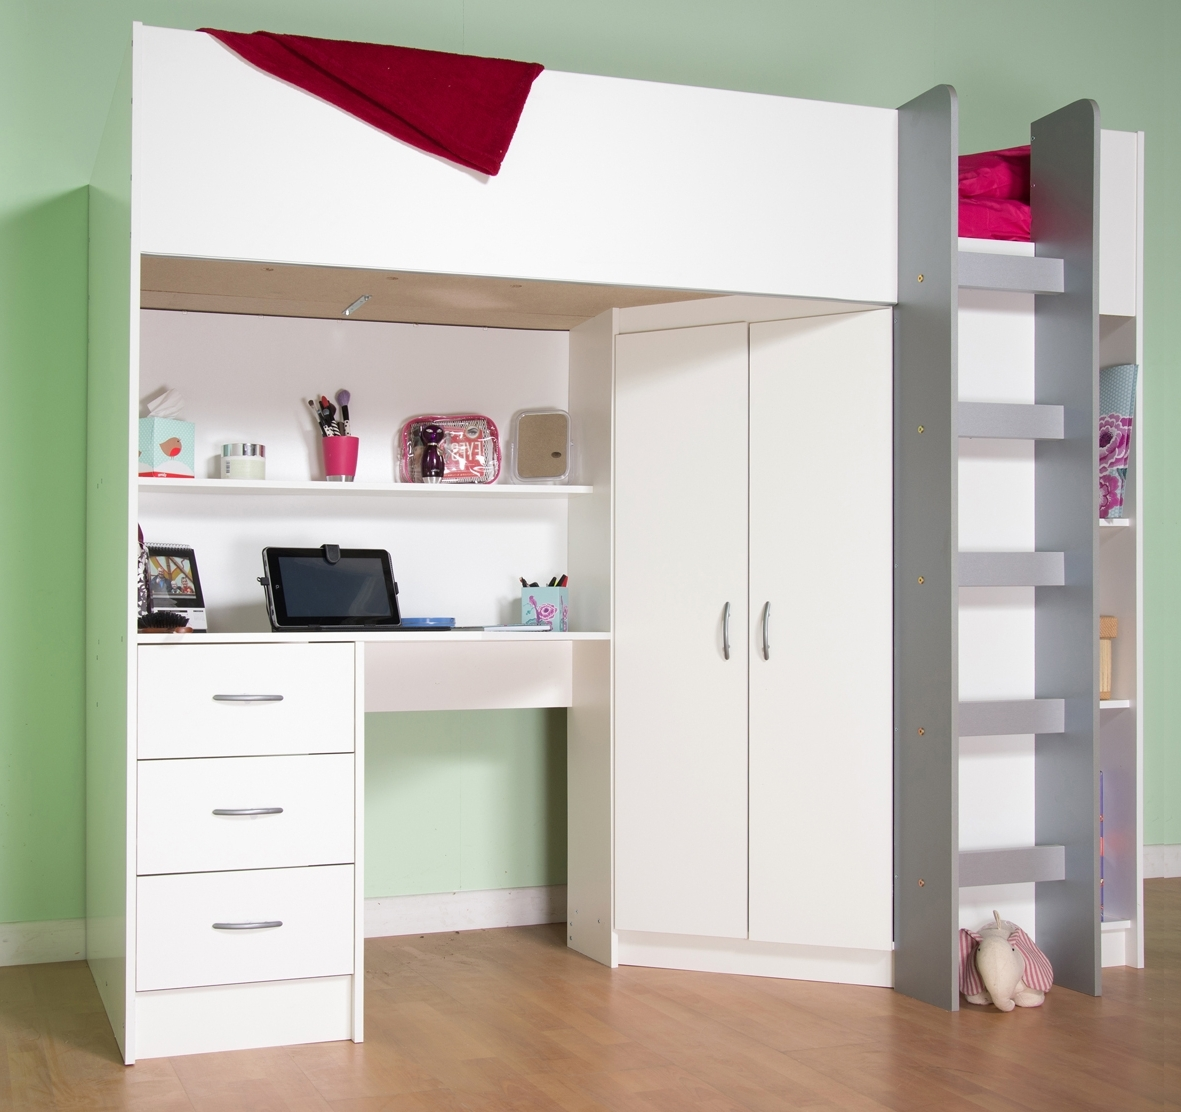 Fashionable Cabin Beds, Midi Beds, High Sleeper Beds, Childrens Beds, Teenager Throughout High Sleeper Cabin Bed With Wardrobes (View 4 of 15)